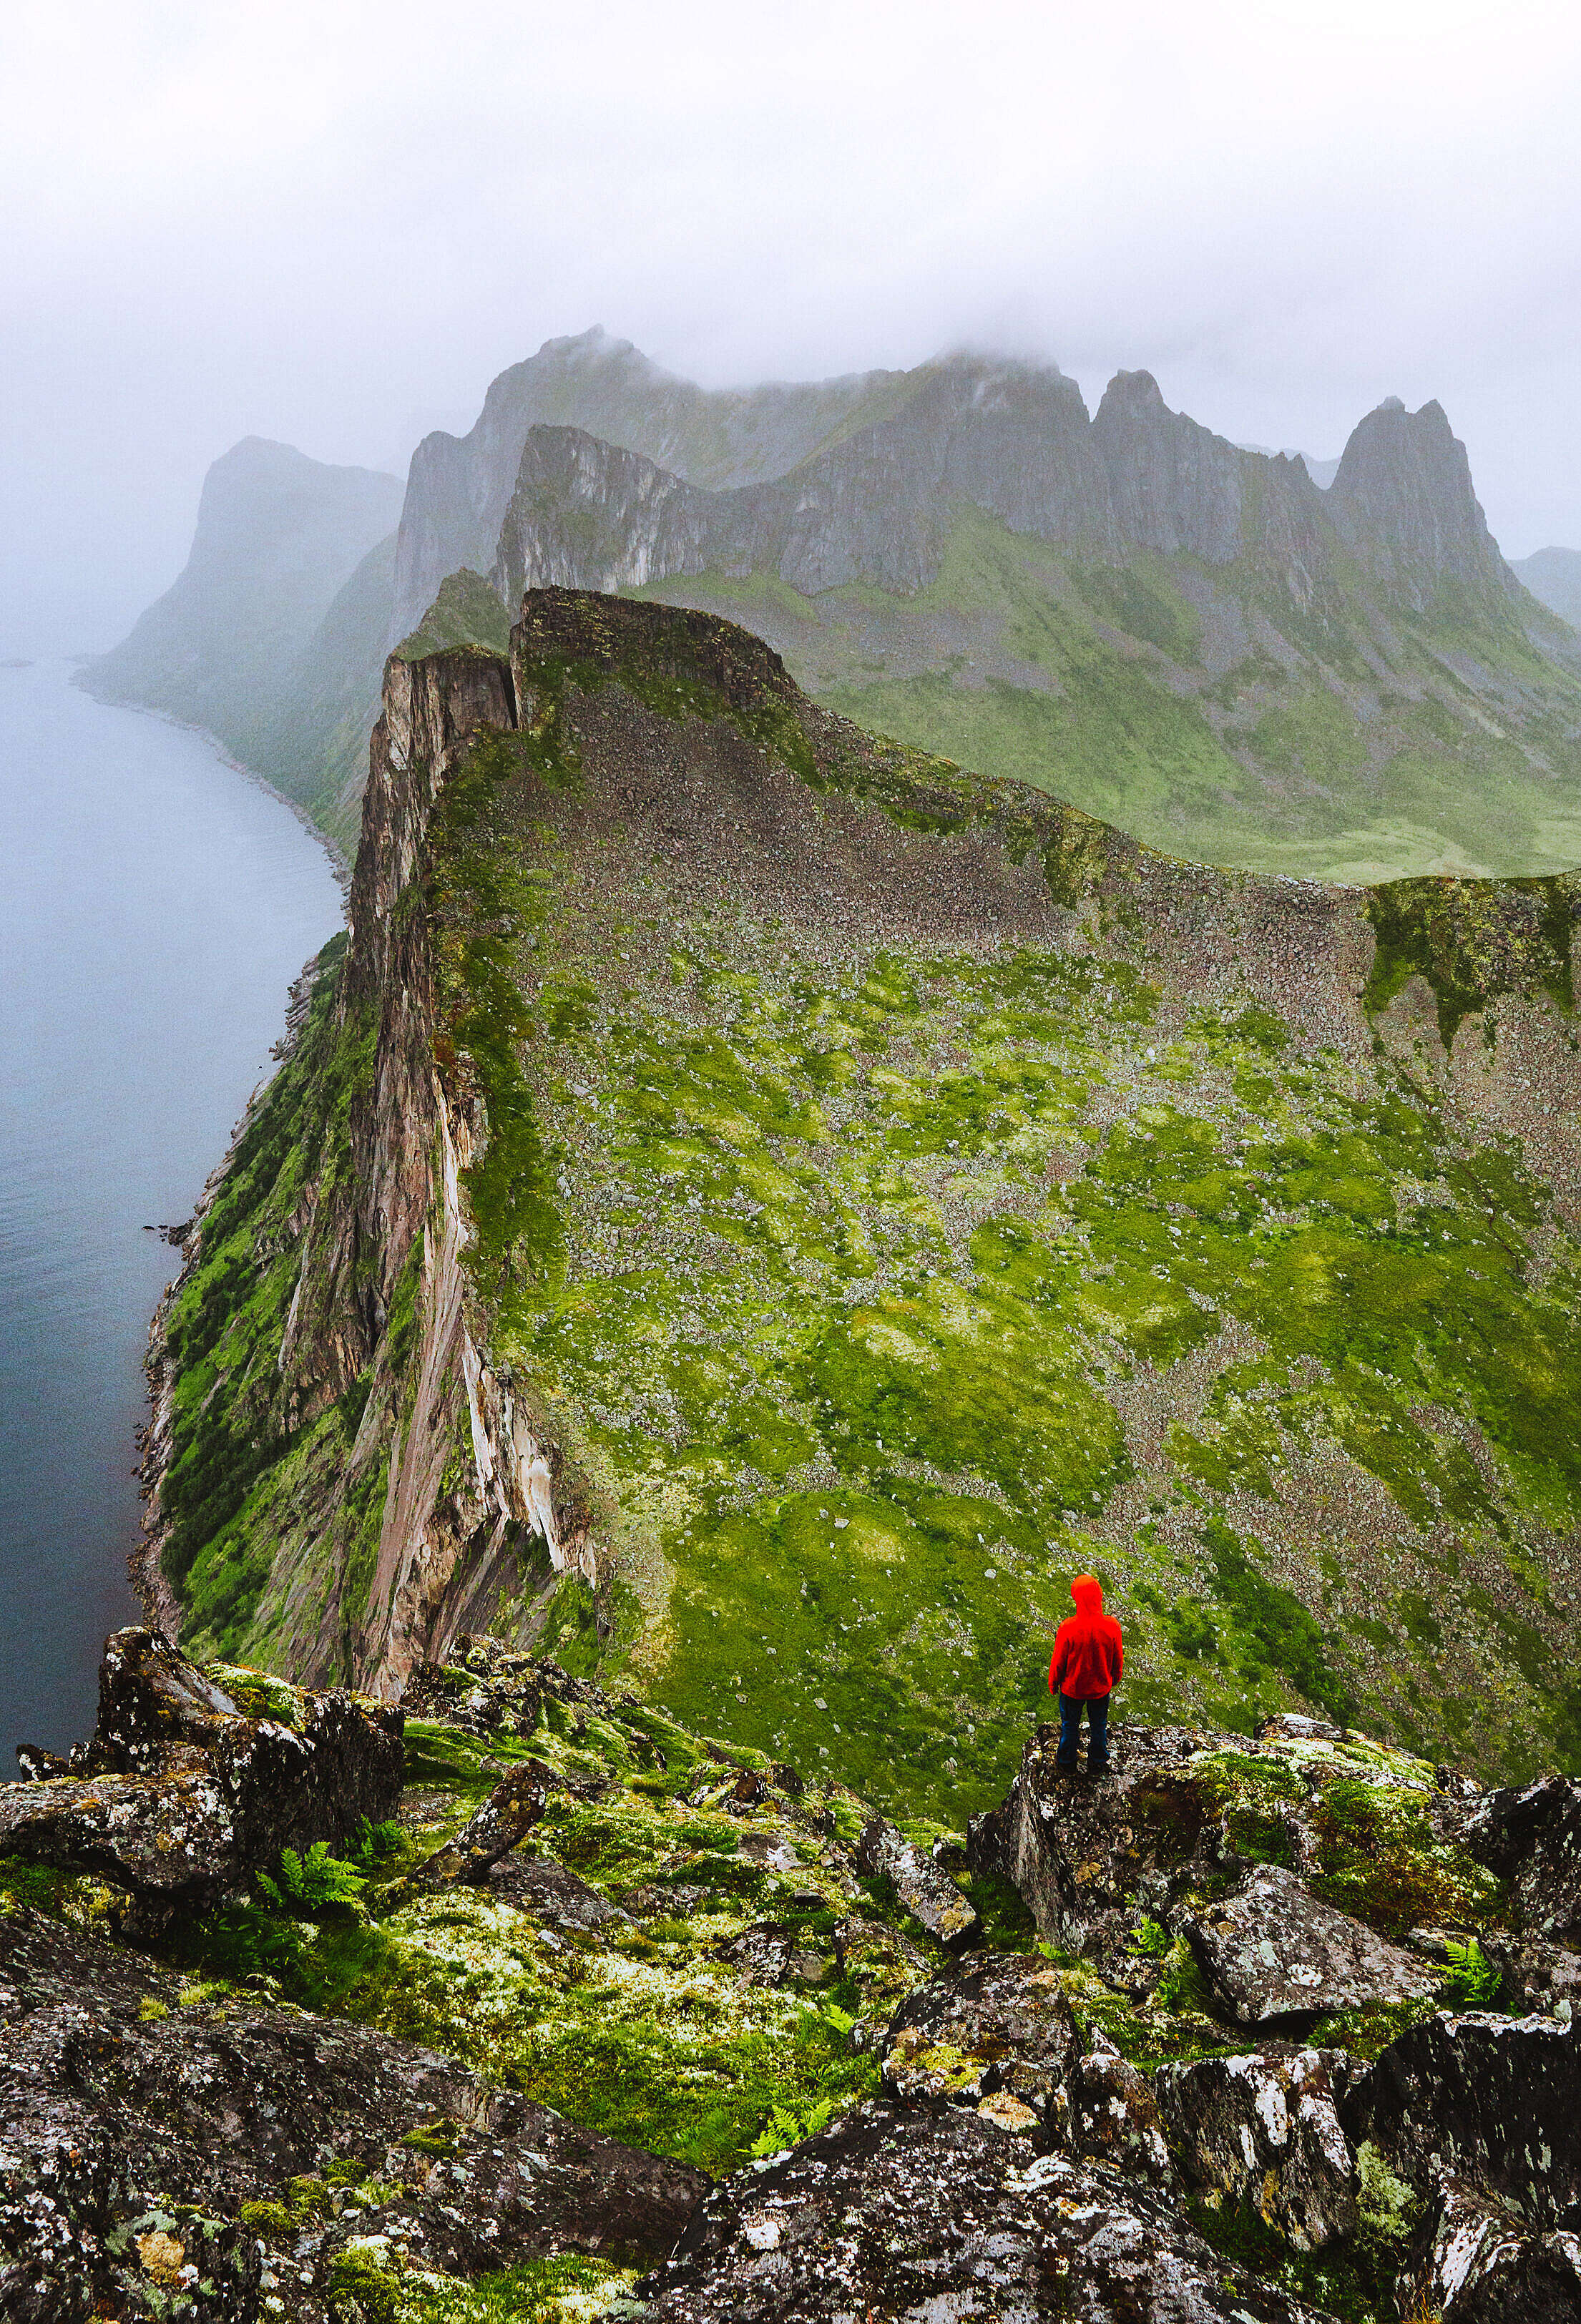 Hiker Enjoying the View on the Foggy Mountains Vertical Free Stock Photo